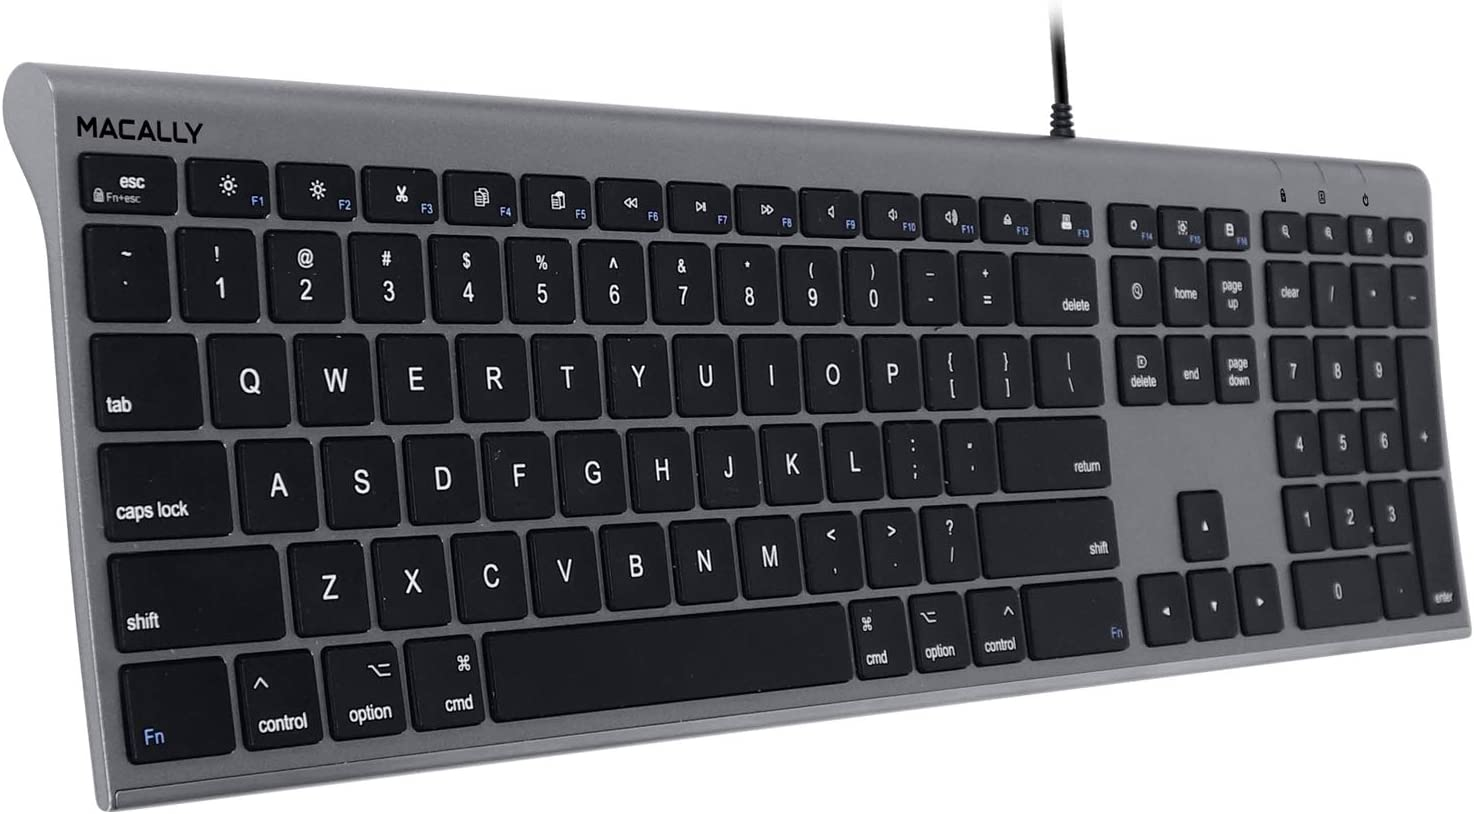 Macally Ultra Slim USB Wired Computer Keyboard - Works as a Windows or Mac Wired Keyboard - Full Size Keyboard with Numeric Keypad & 20 Shortcut Keys - Plug and Play Mac Keyboard - Space Gray